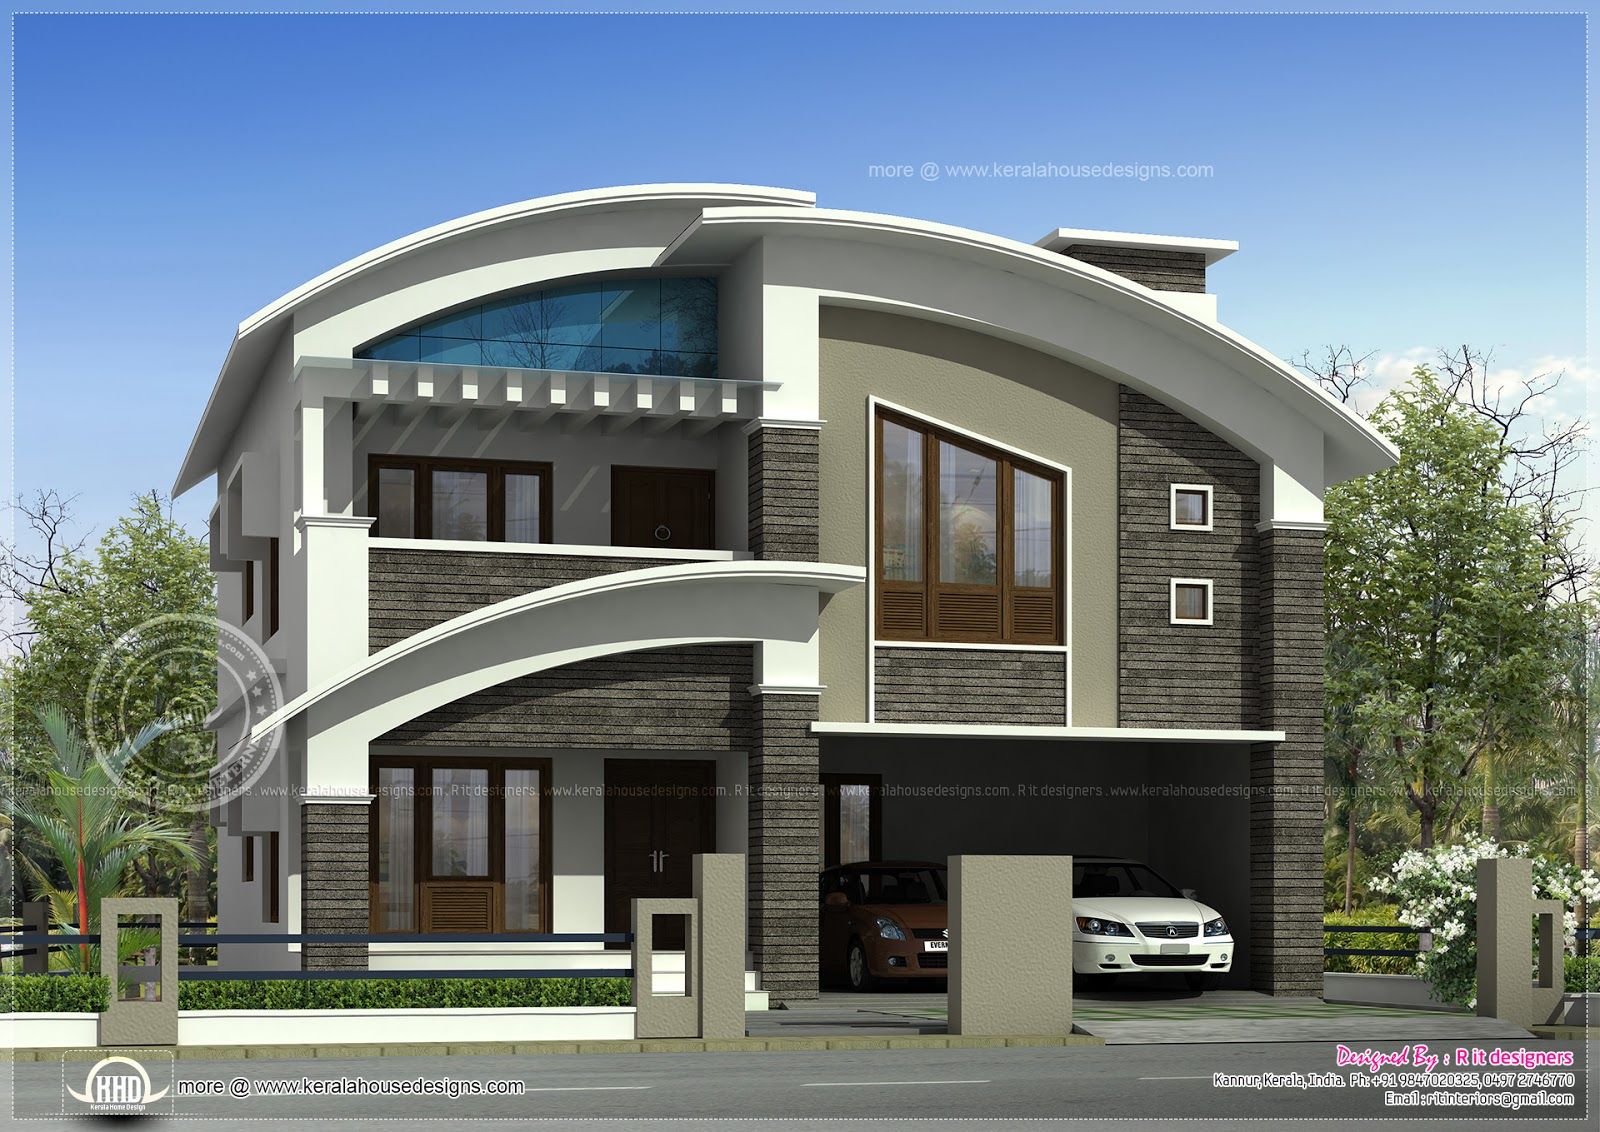 2568 square feet modern villa exterior kerala home design and floor plans - Gorgeous housessquare meters ...